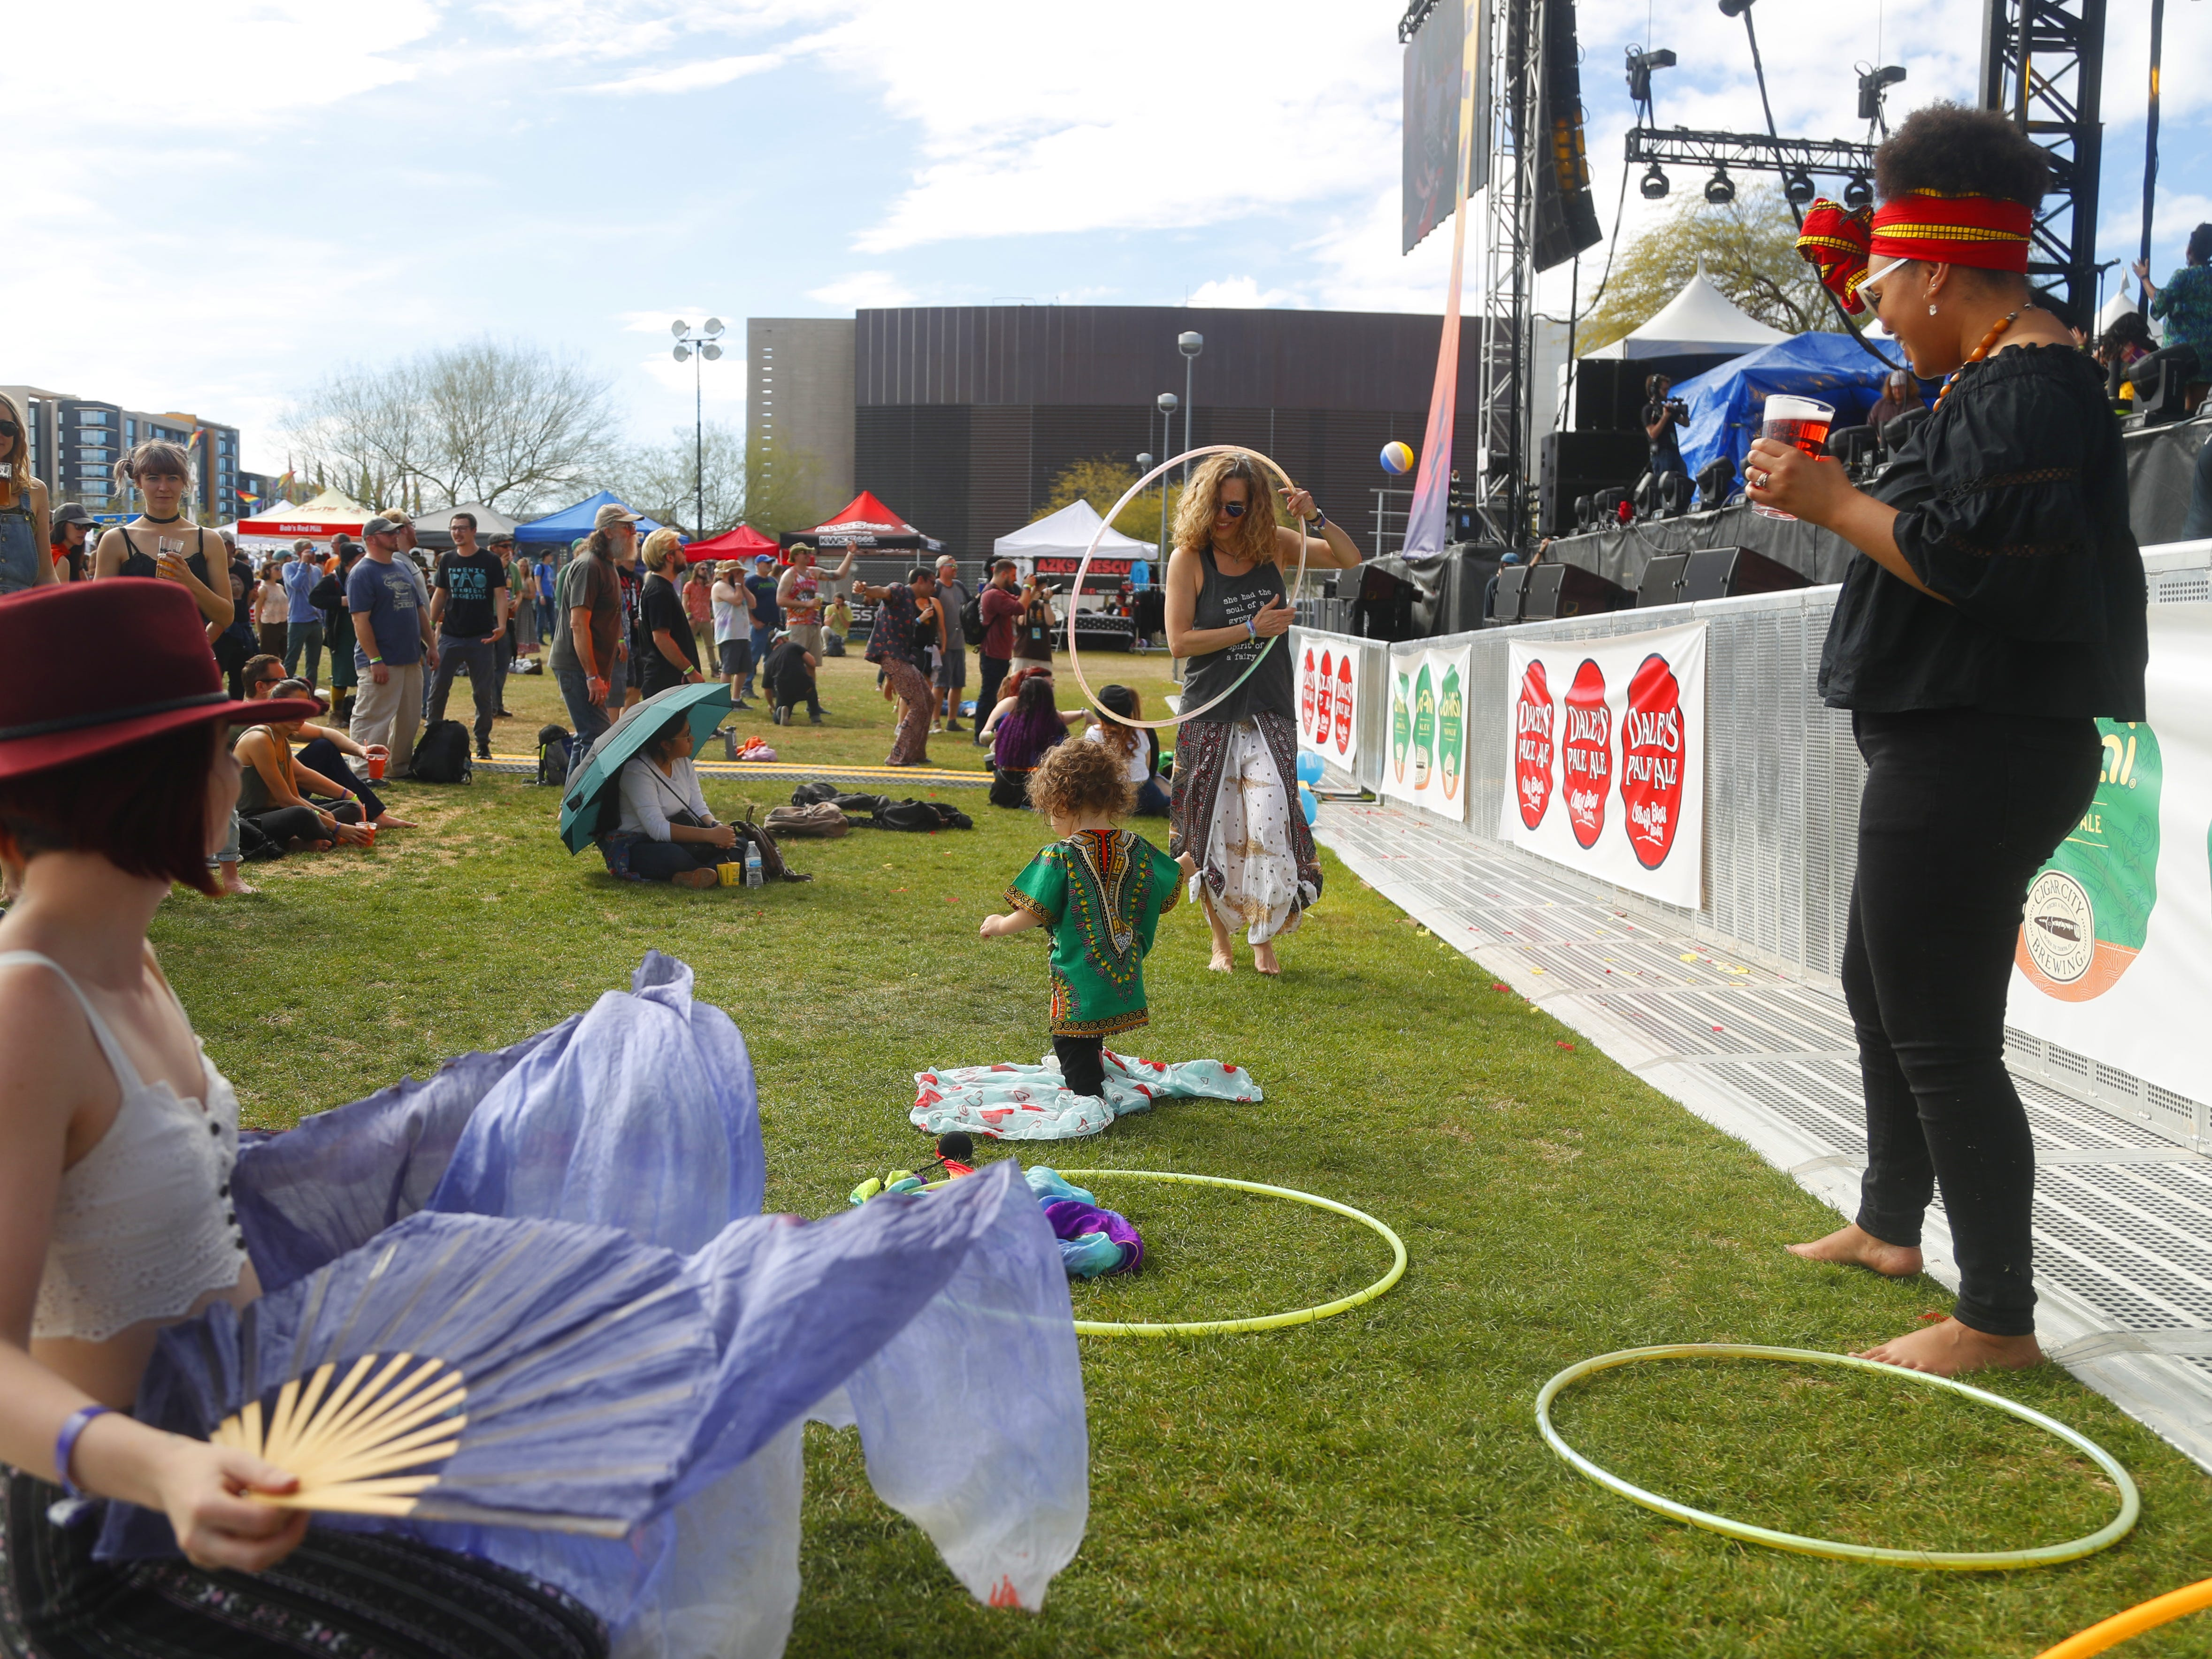 Nova Mulvaney, 1, followed by his mother Alexandra Ncube (right) make their way in front of the stage for Phoenix Afrobeat Orchestra during the McDowell Mountain Music Festival in Phoenix, Ariz. on March 2, 2019.